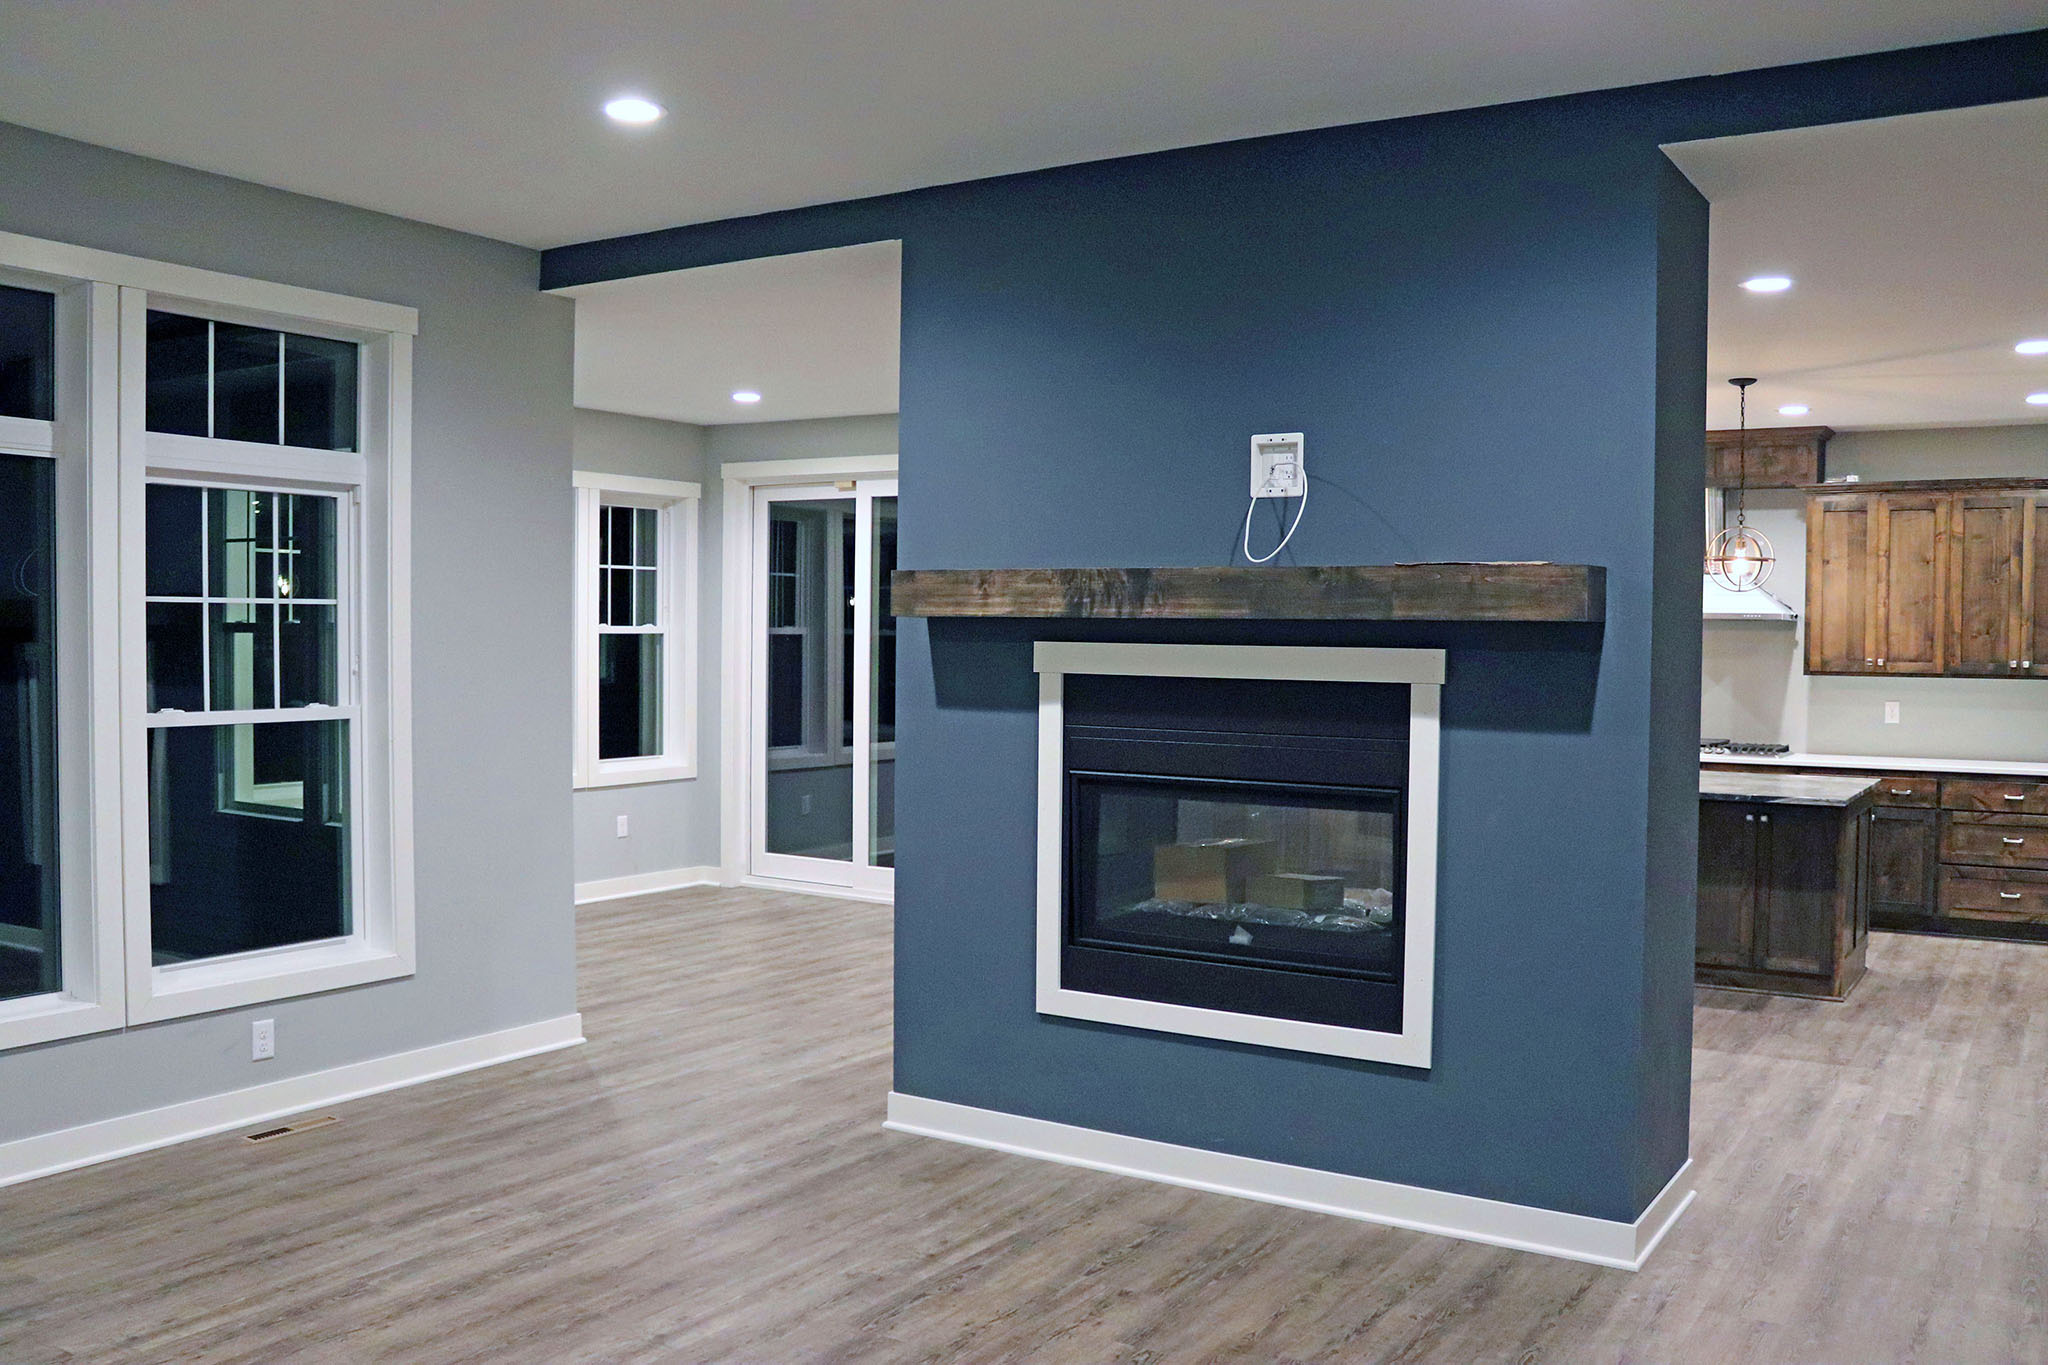 Double-sided fireplace with wood mantle